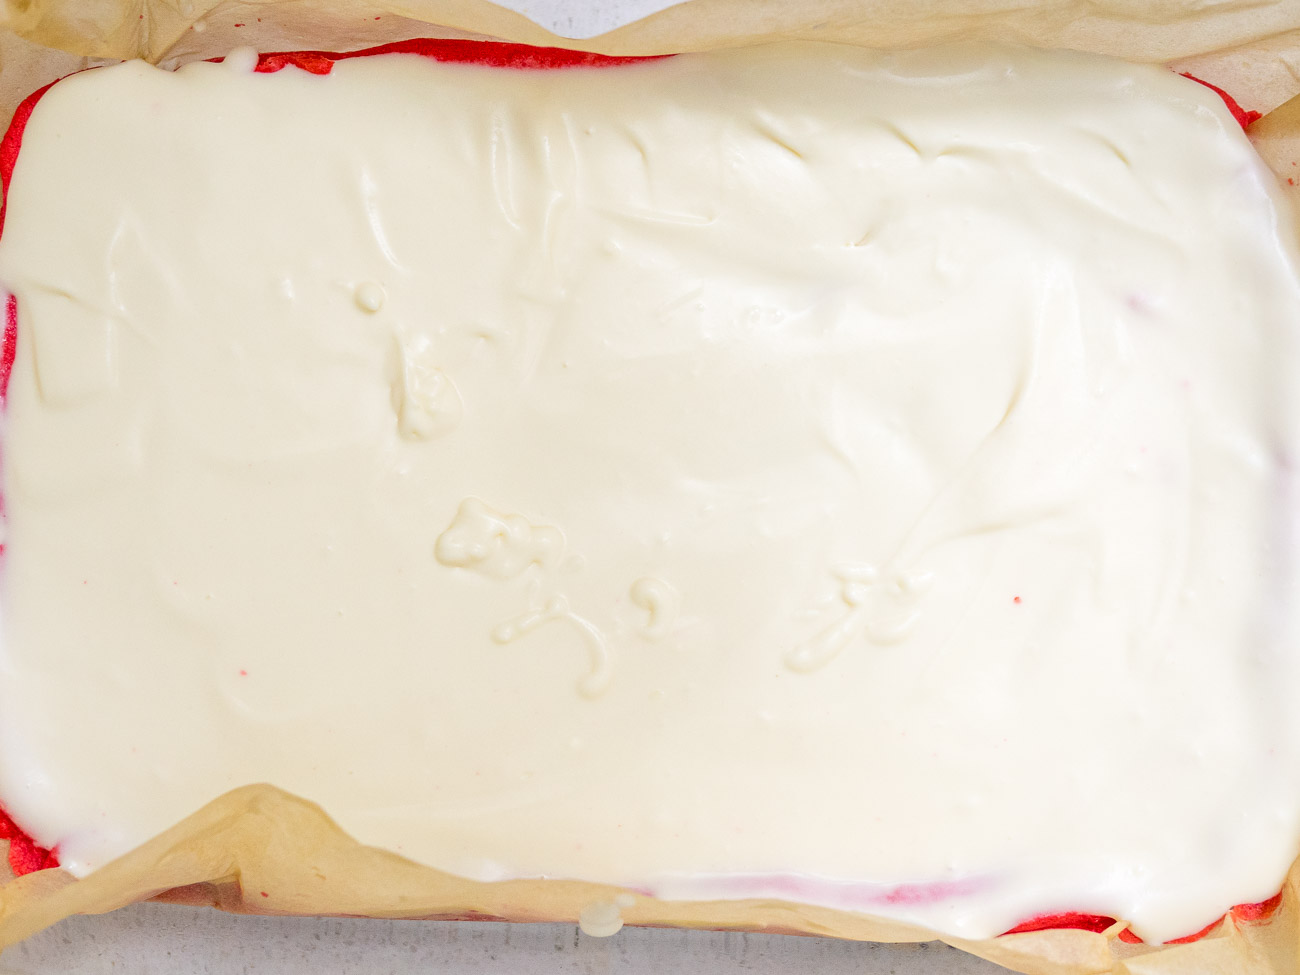 Spread evenly on cooled cookie layer. Place in the refrigerator or freezer for 30 minutes.